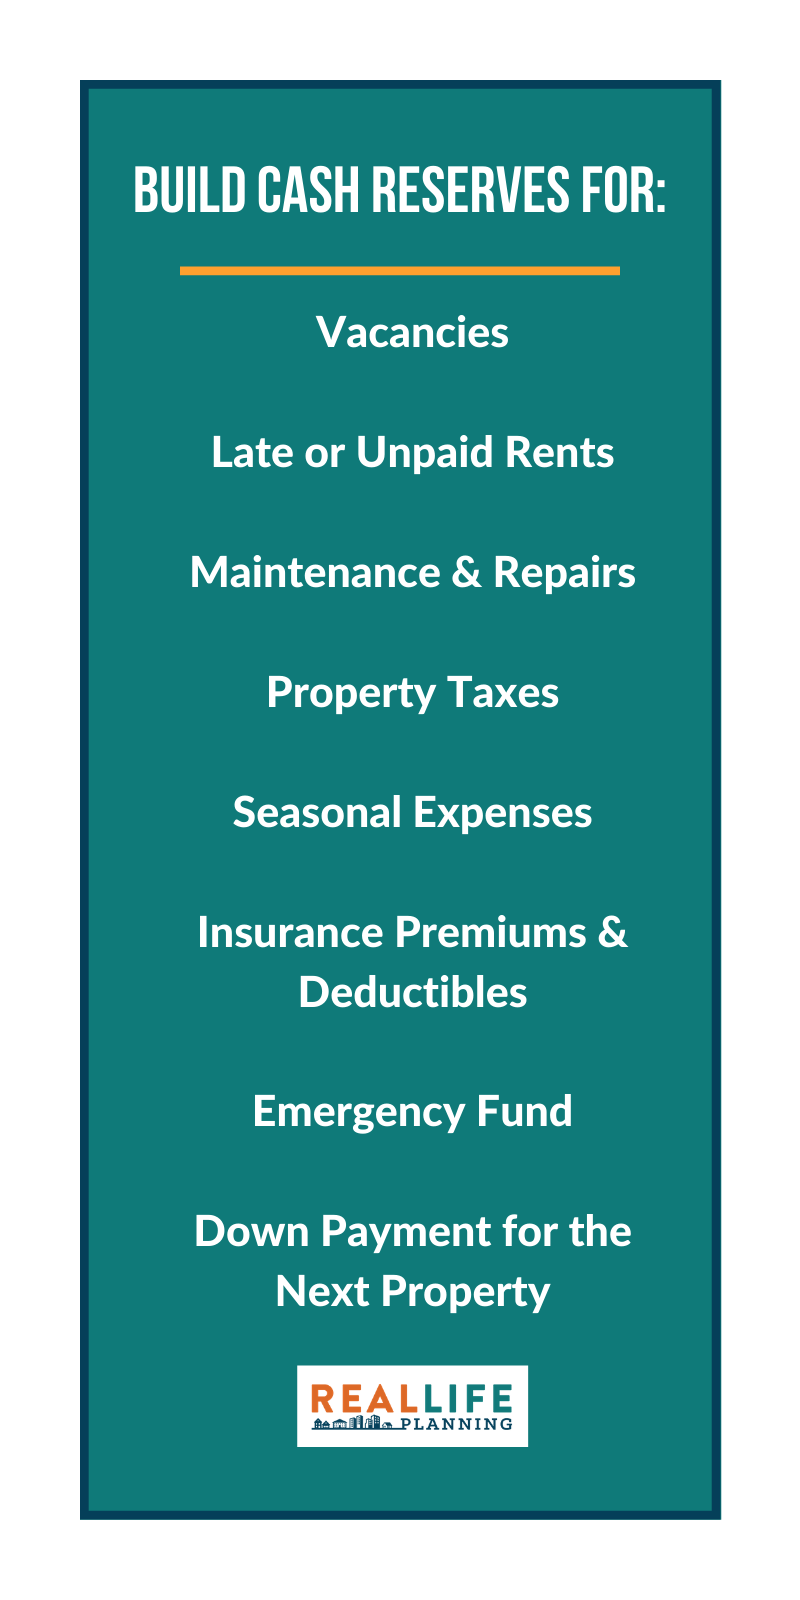 Build rental property cash reserves for vacancies, late or unpaid rents, maintenance, repairs, taxes, seasonal expenses, insurance, emergencies, next down payment